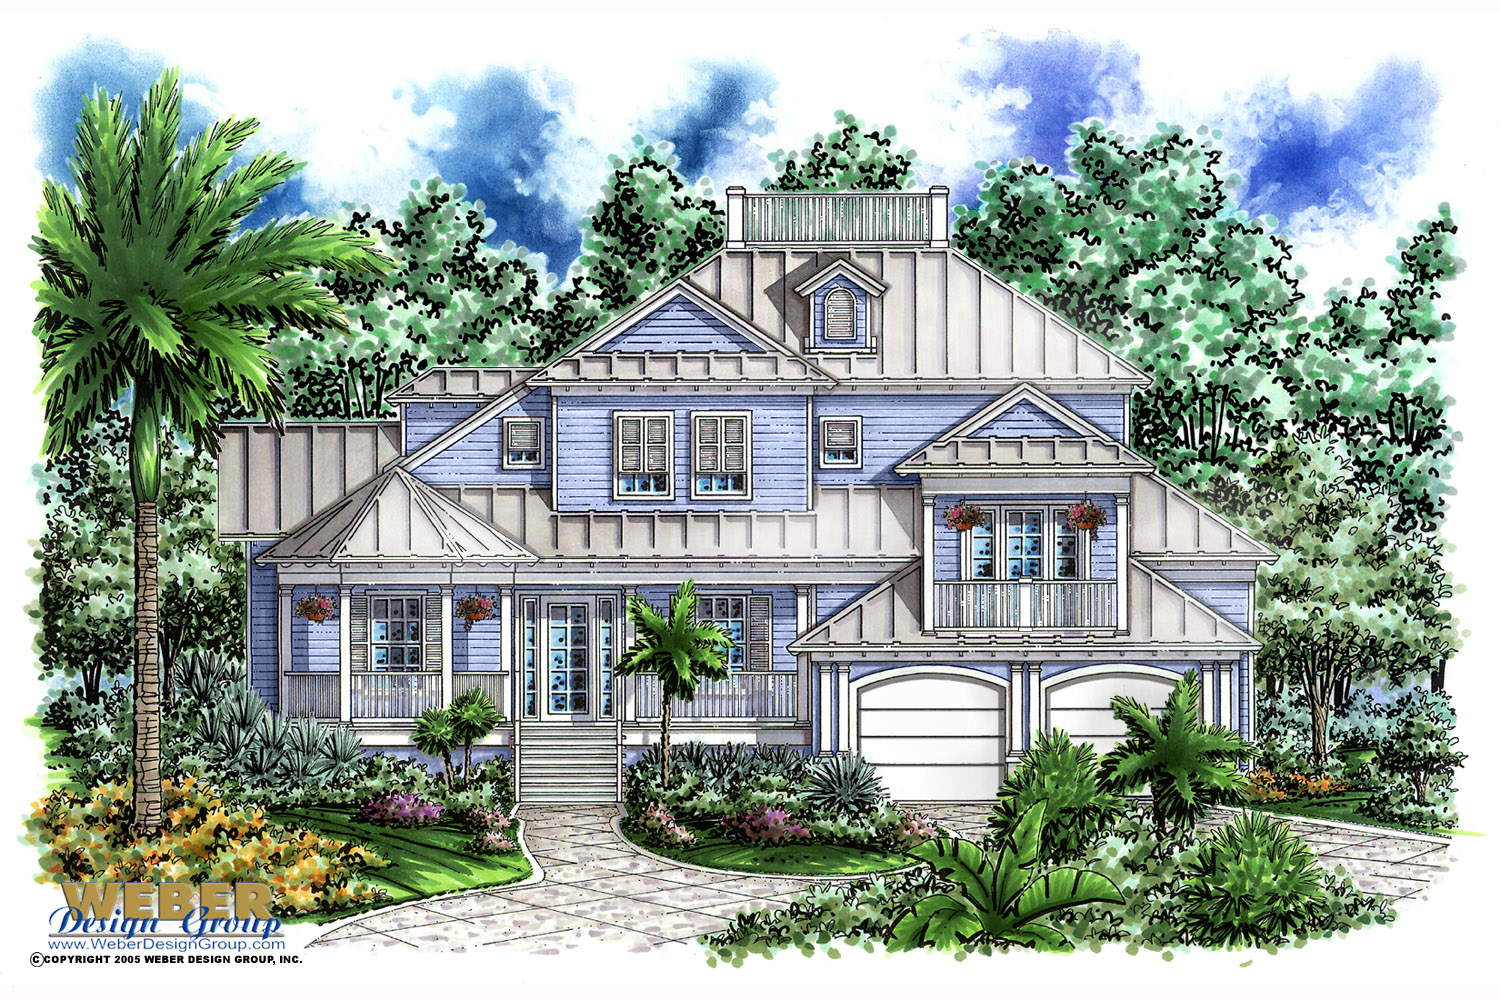 Olde florida house design islander house plan weber for Florida home designs